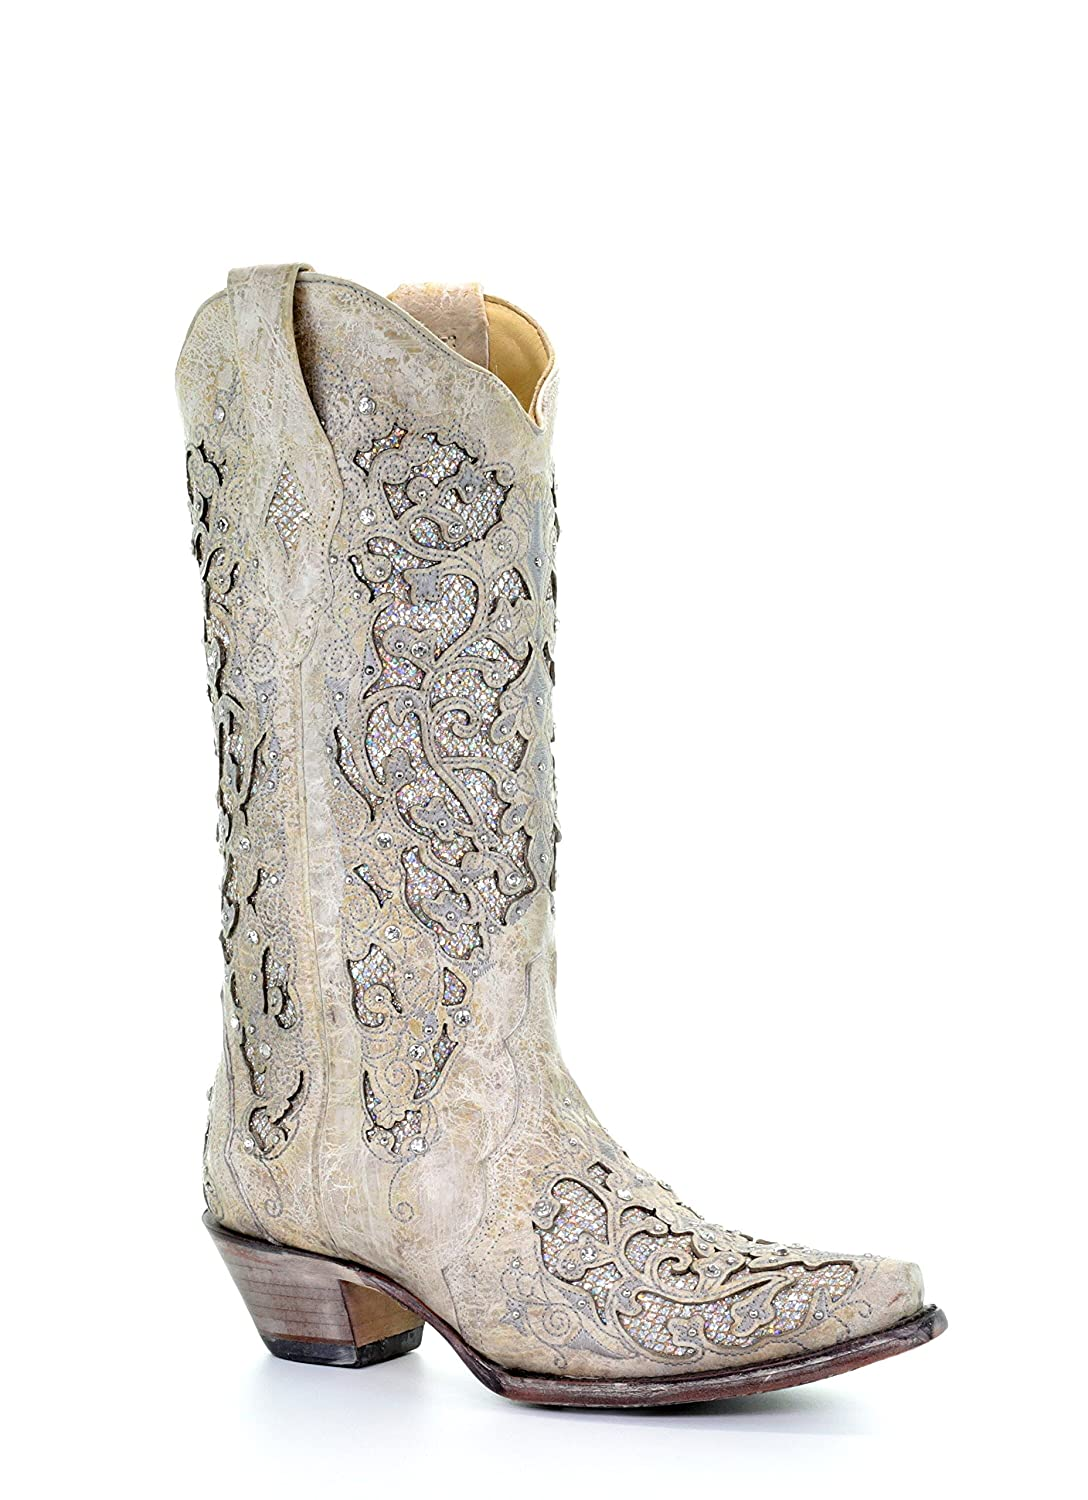 Corral Women's 14-inch Off White Glitter Toe Inlay & Crystals Snip Toe Glitter Pull-On Cowboy Boots B07314PXZZ 8.5 B(M) US|Bone 527e15